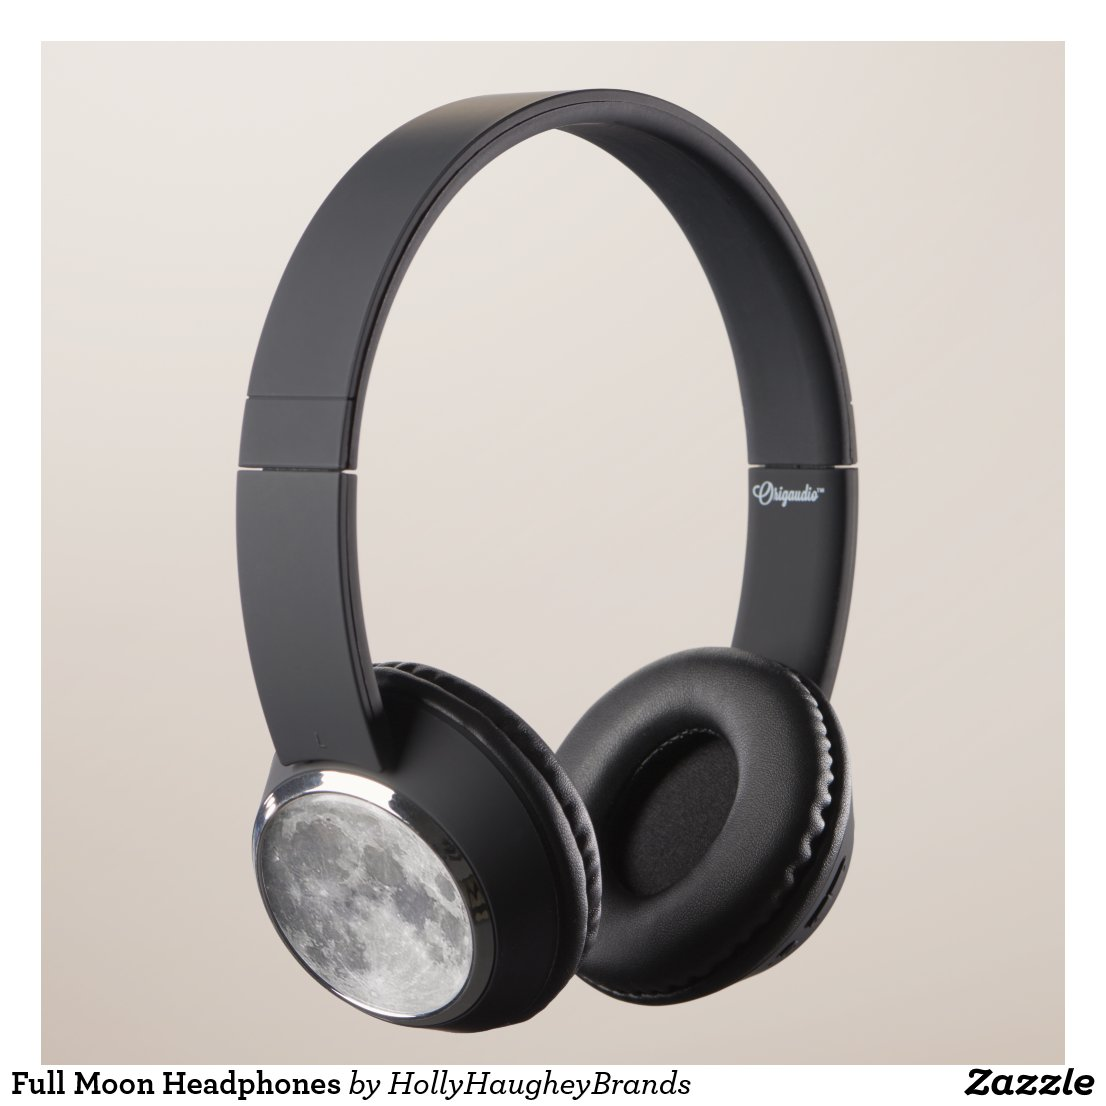 Full Moon Headphones